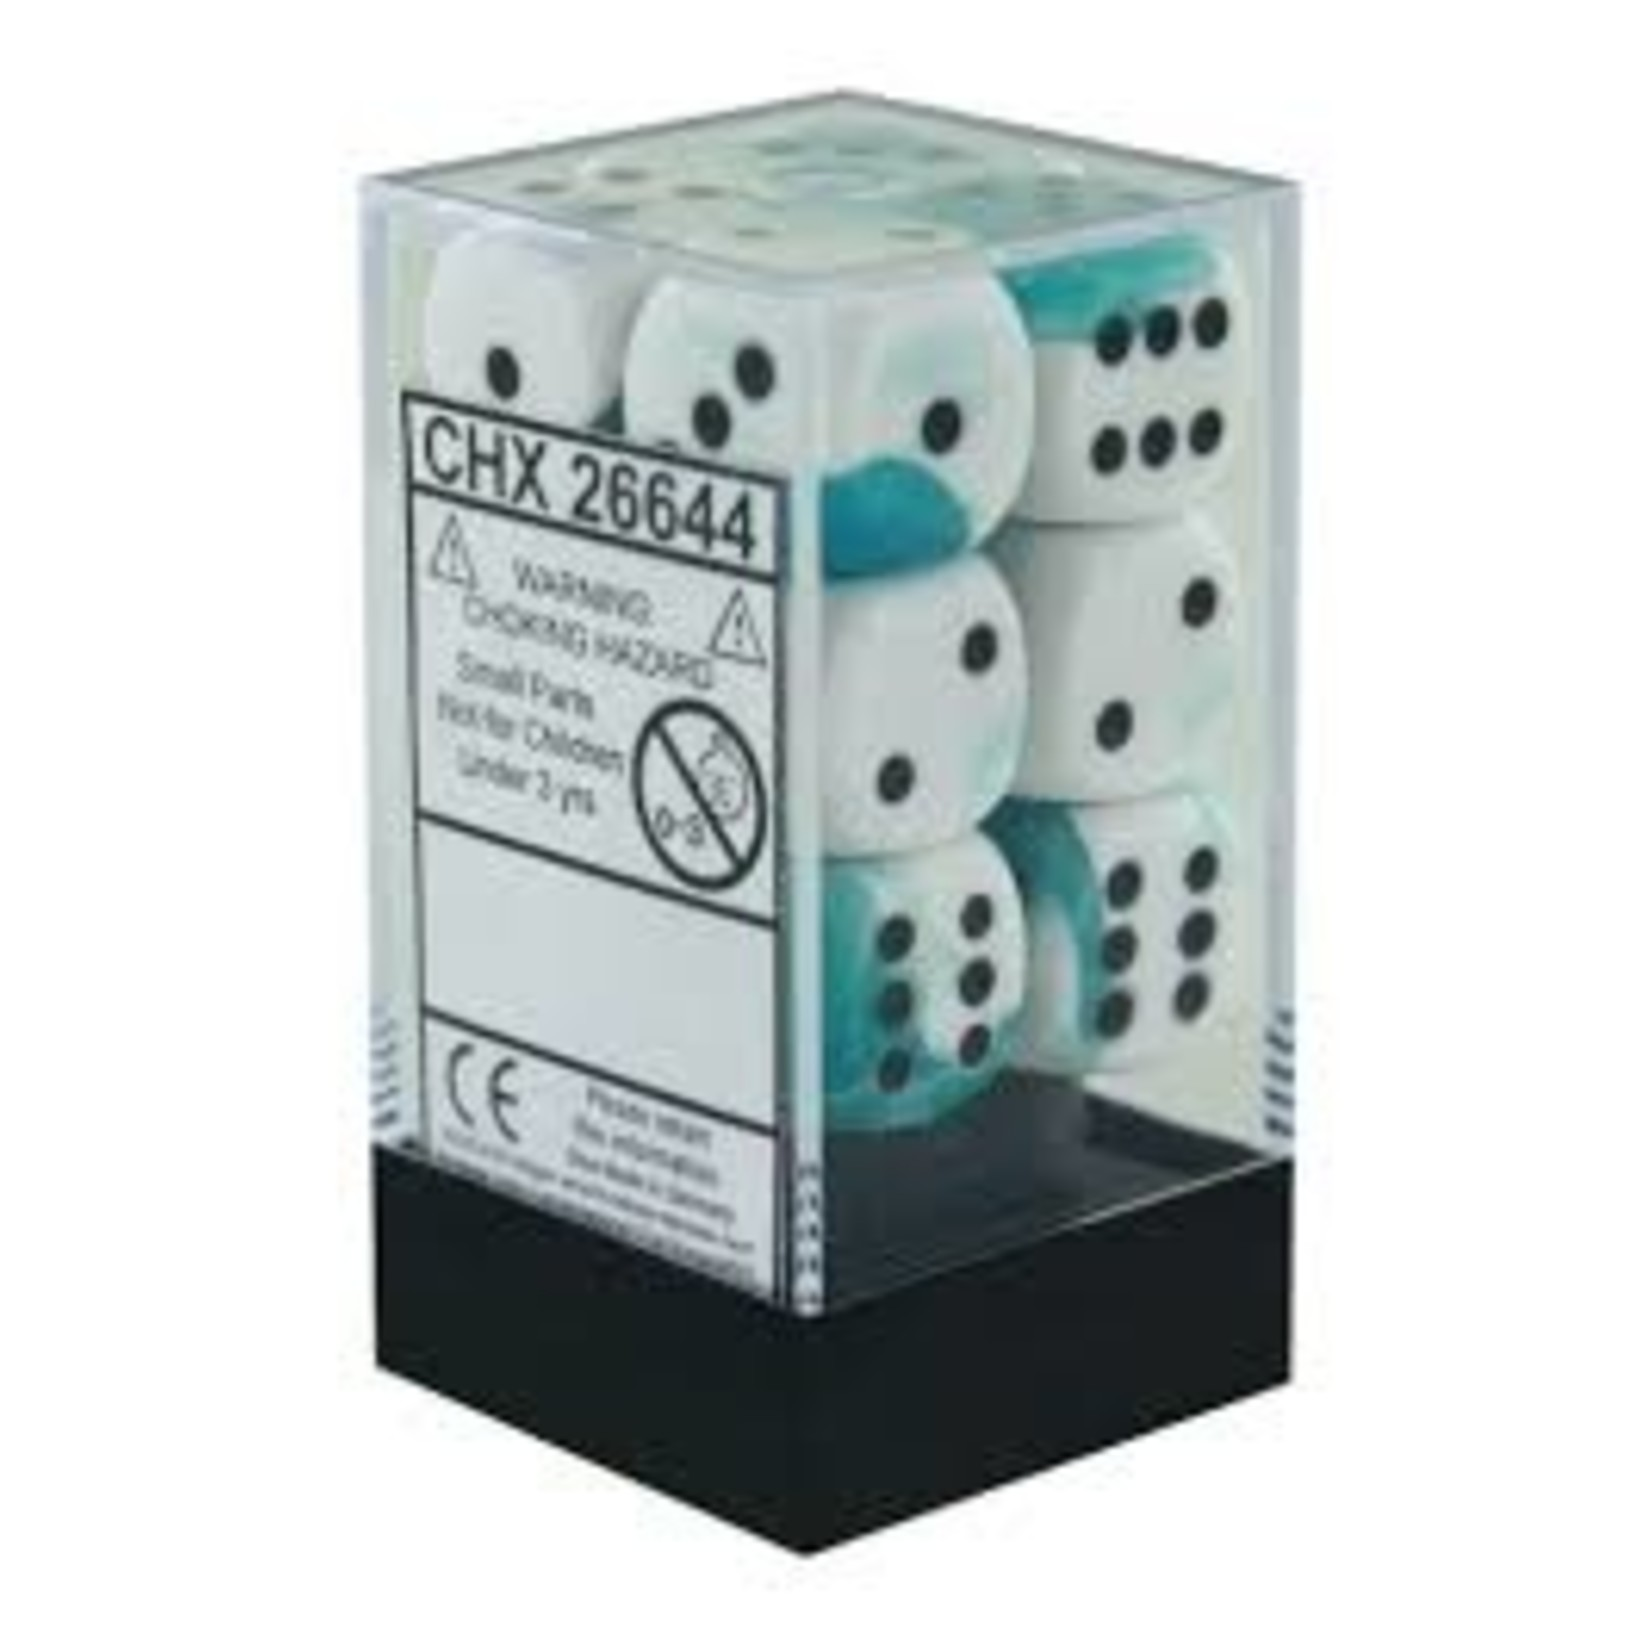 Gemini 4: 16mm D6 White Teal/Black (12)